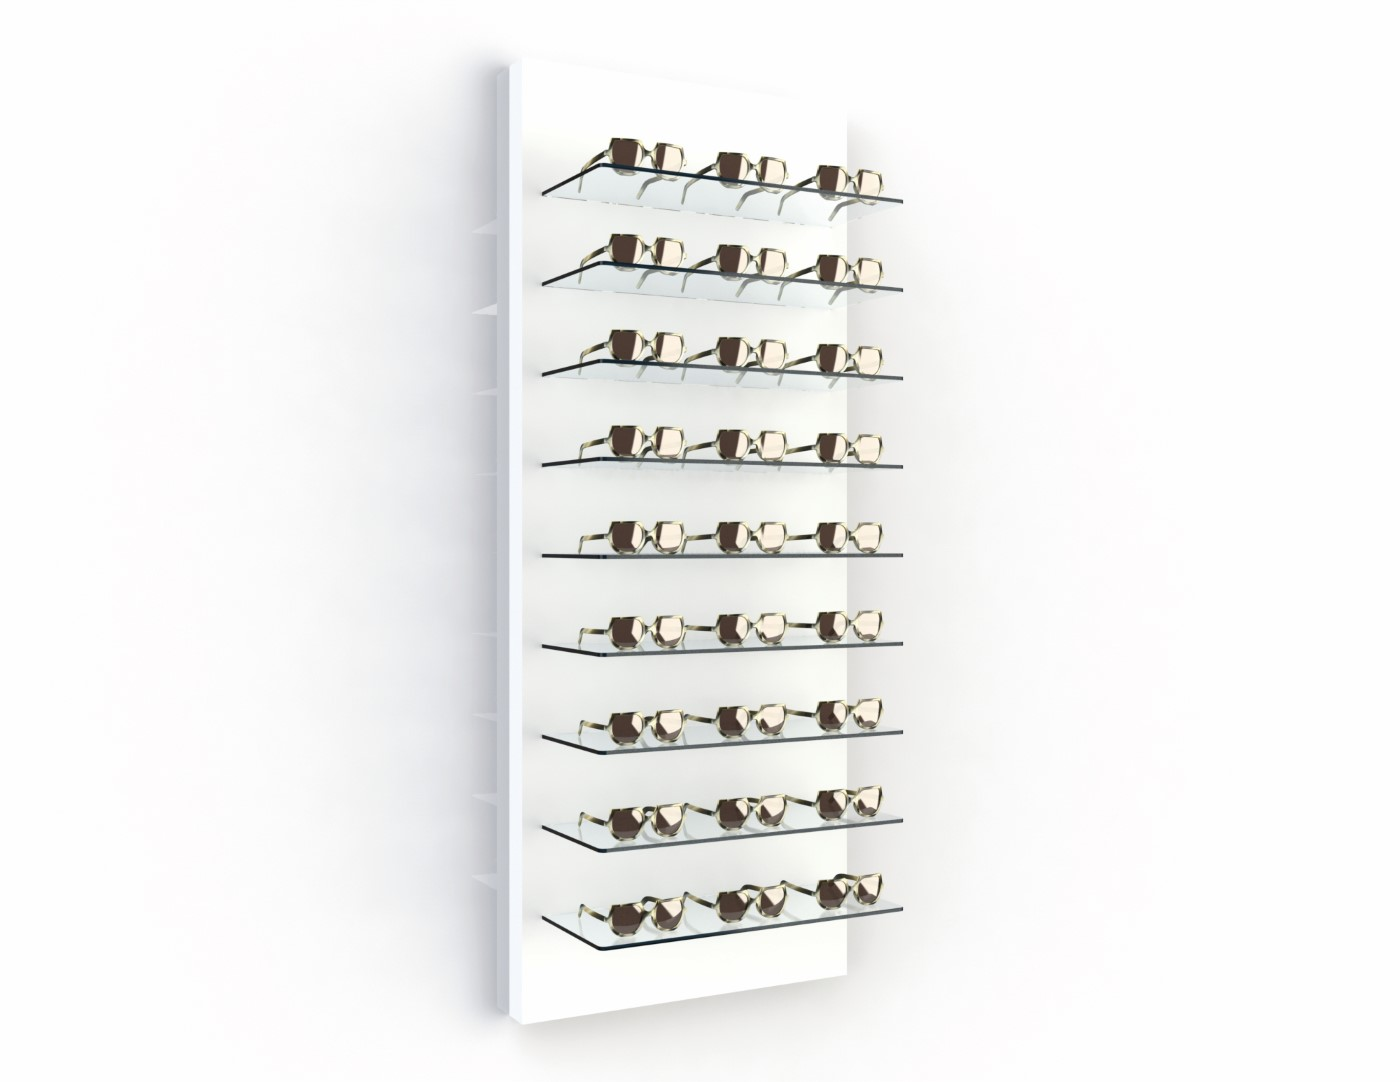 <strong>#58120W</strong><br>9x 6mm crystal clear shelves<br>27 frames